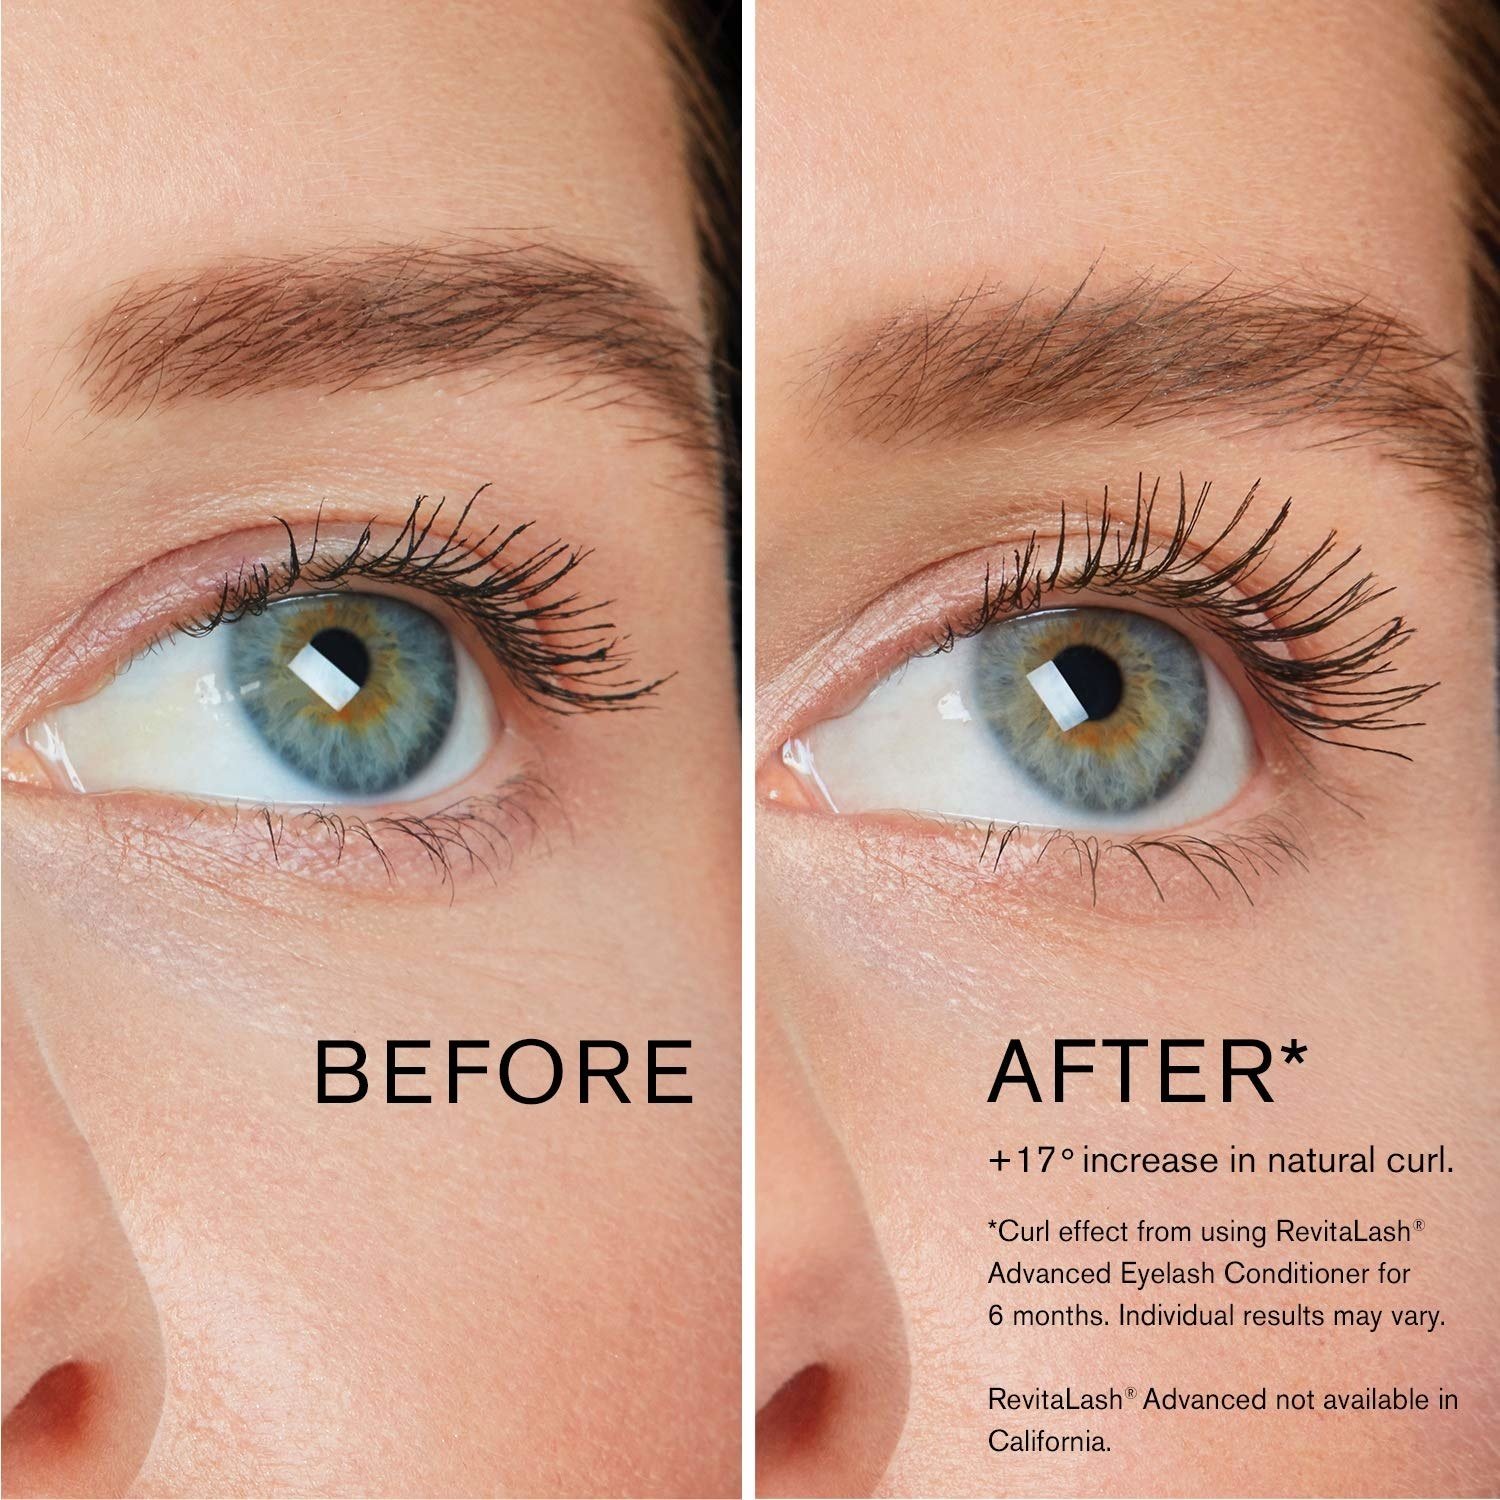 a before and after photo of model with shorter lashes on left and visibly longer lashes on right